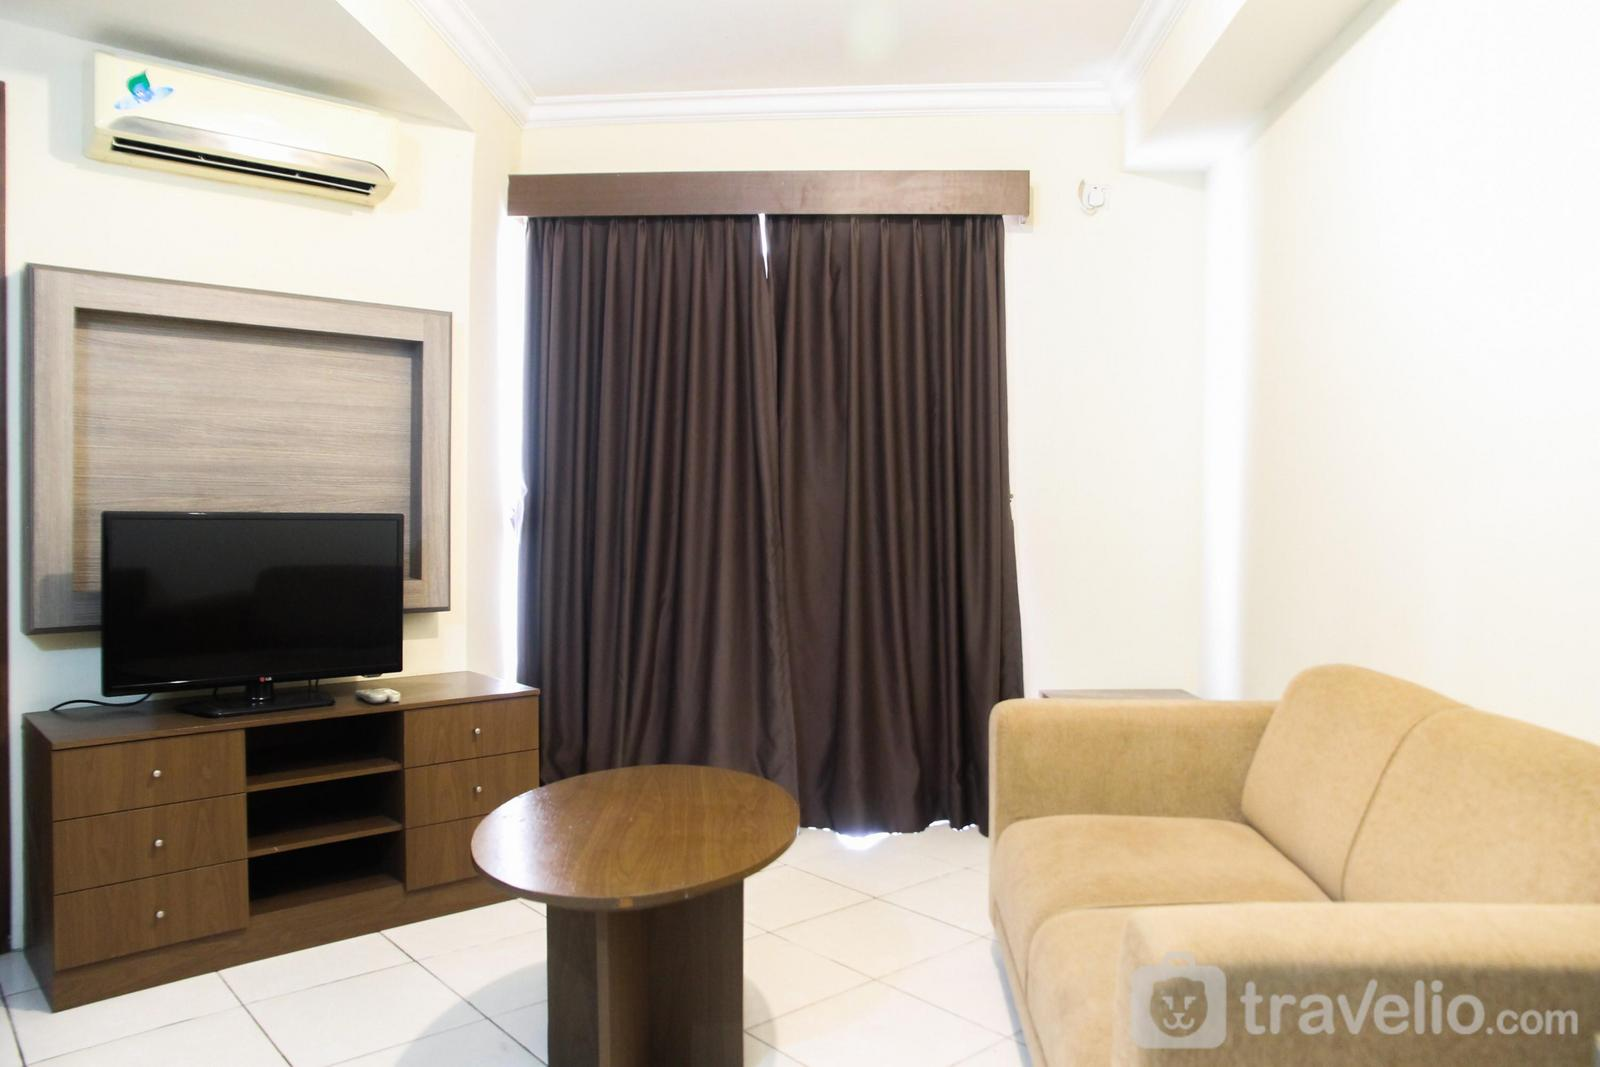 Great Western Apartment - 2BR Apartment with TV Cable @ Great Western Resort By Travelio